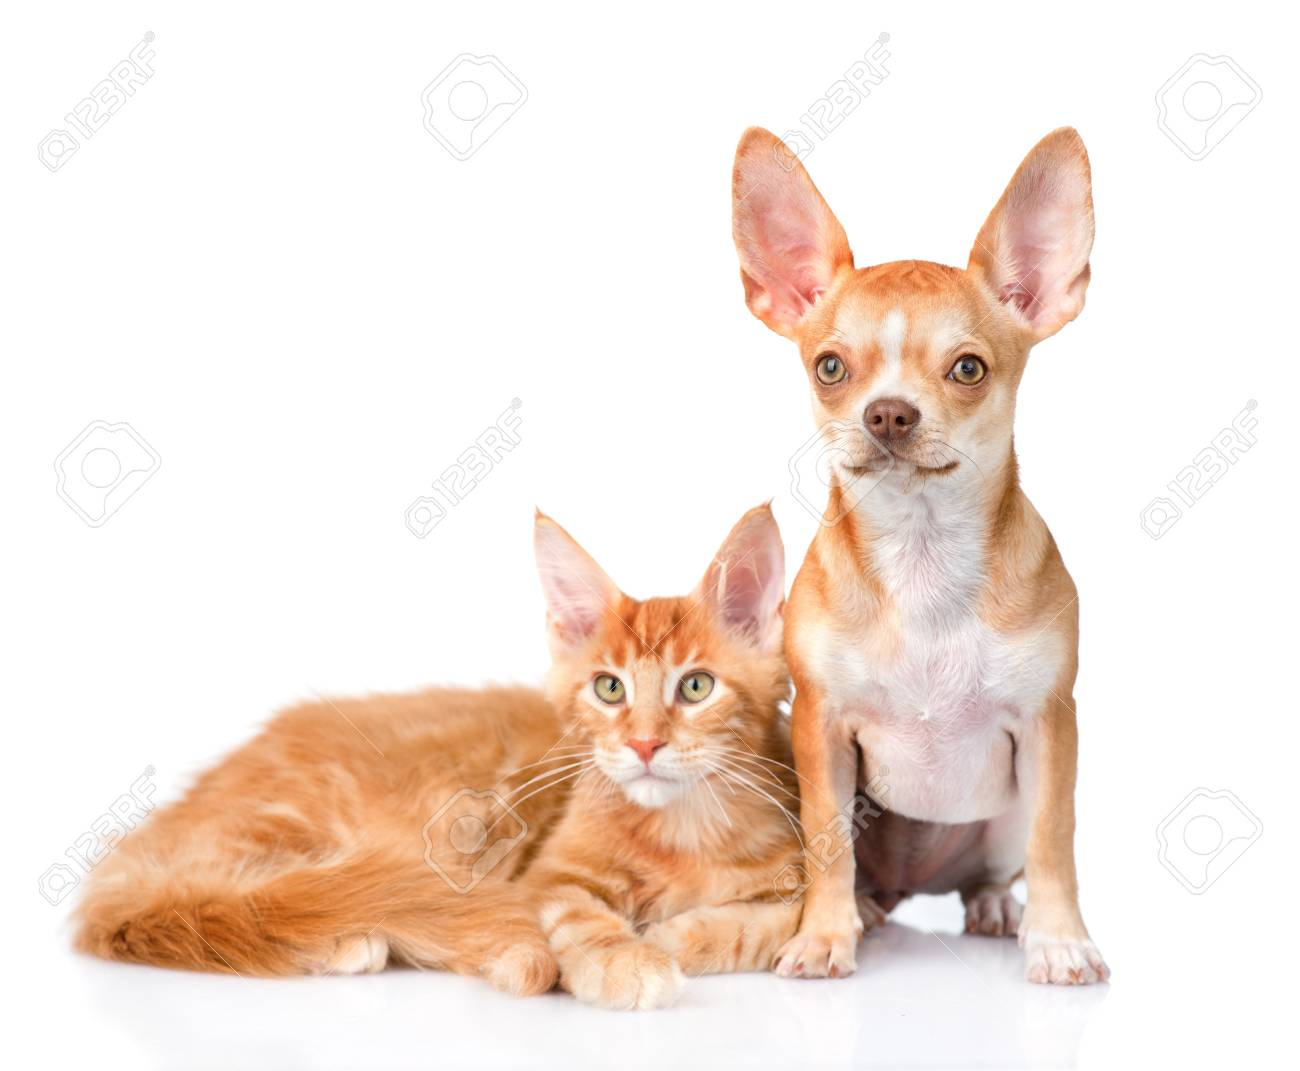 Tiny Chihuahua Puppy And Maine Coon Cat Together Isolated On Stock Photo Picture And Royalty Free Image Image 49608255